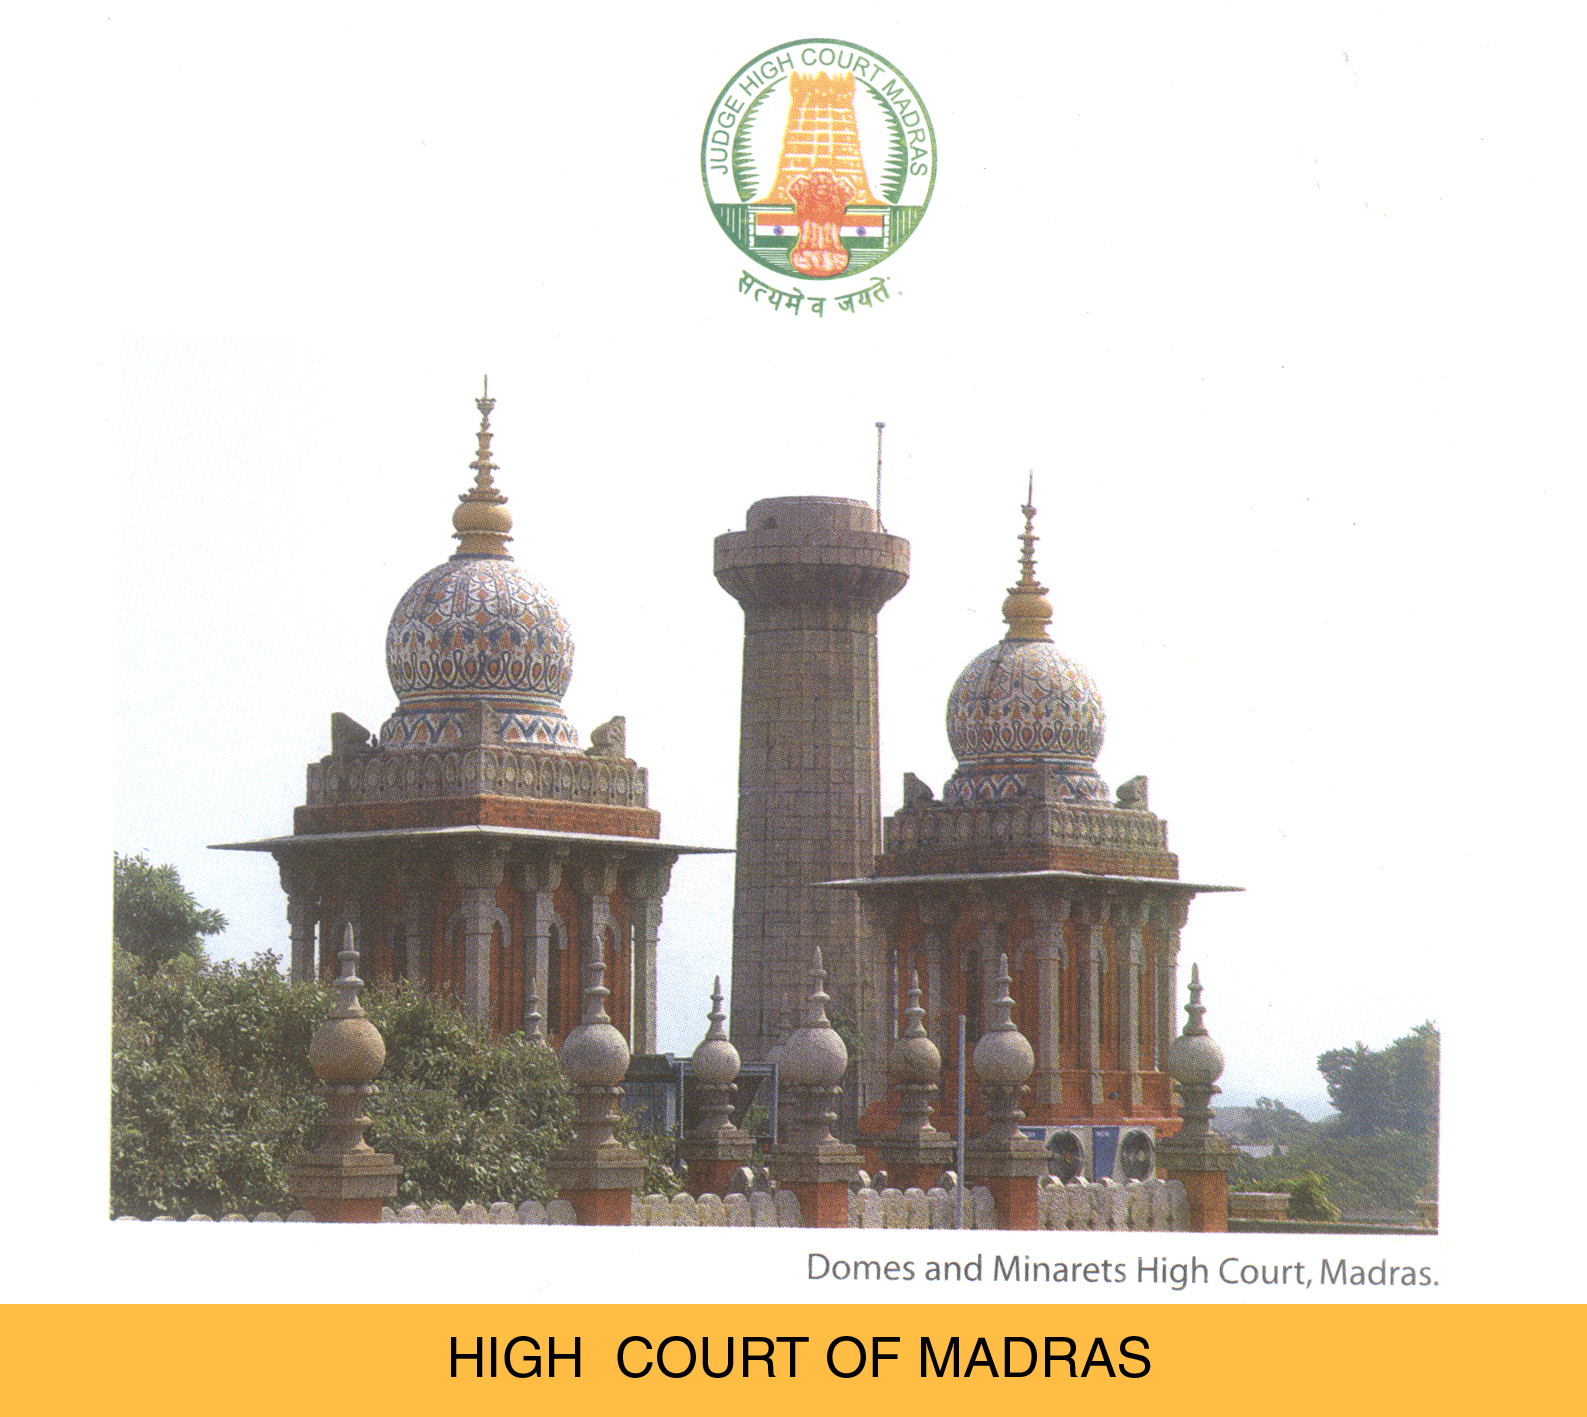 highcourtofmadras1.jpg